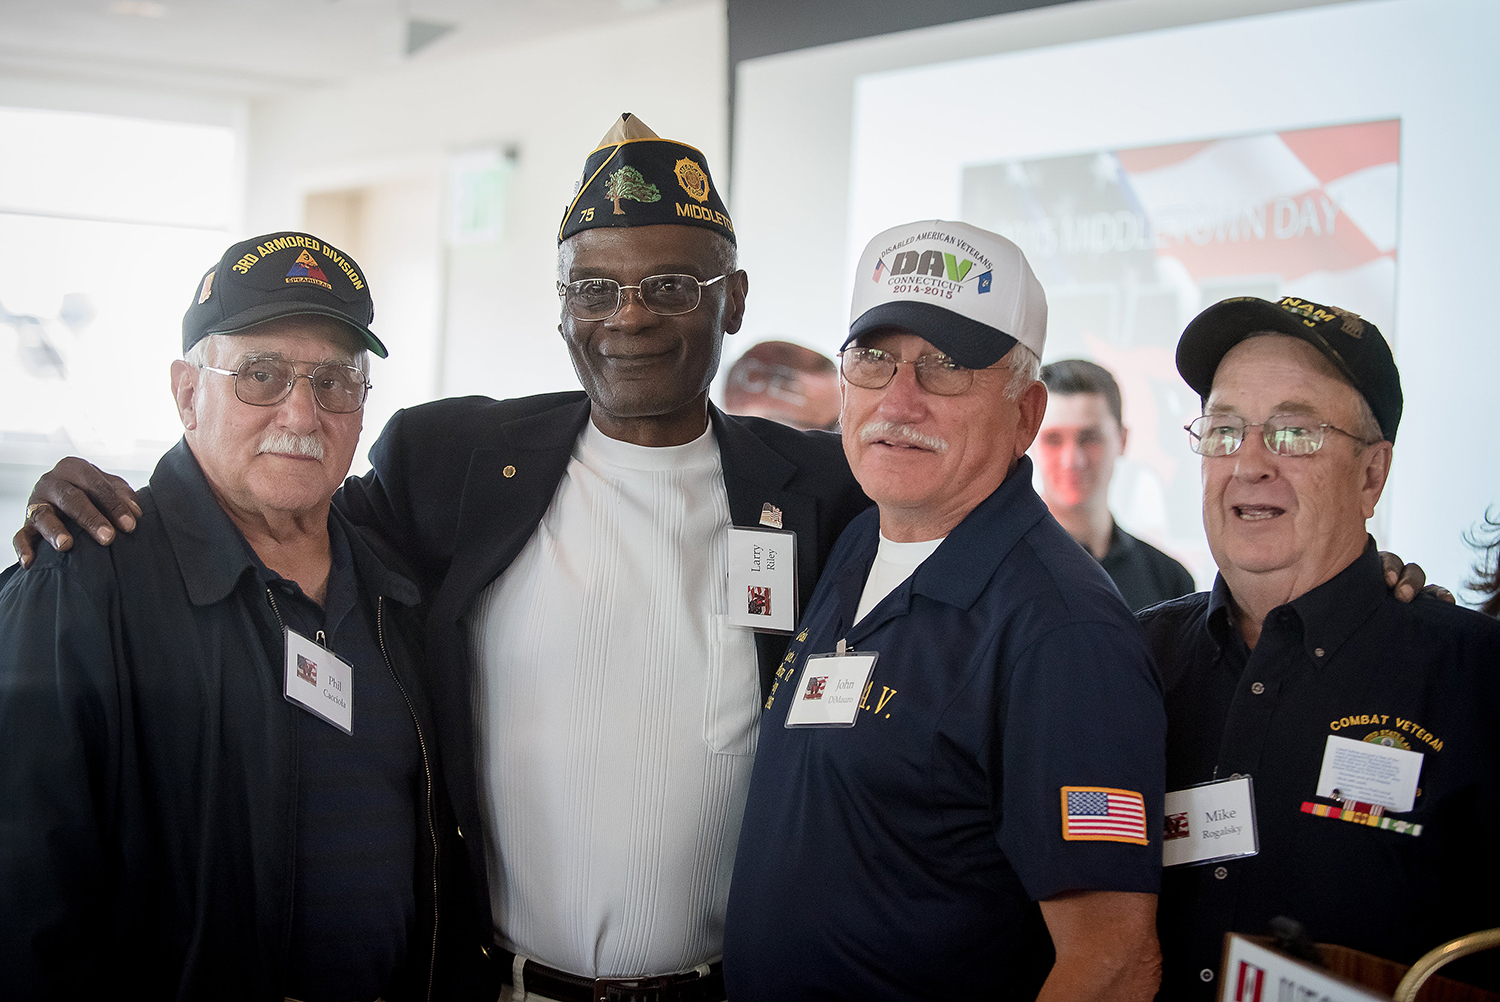 Area veterans were celebrated during Middletown Day at Wesleyan University, Sept. 26, 2015. (Photo by Jennifer Langdon)